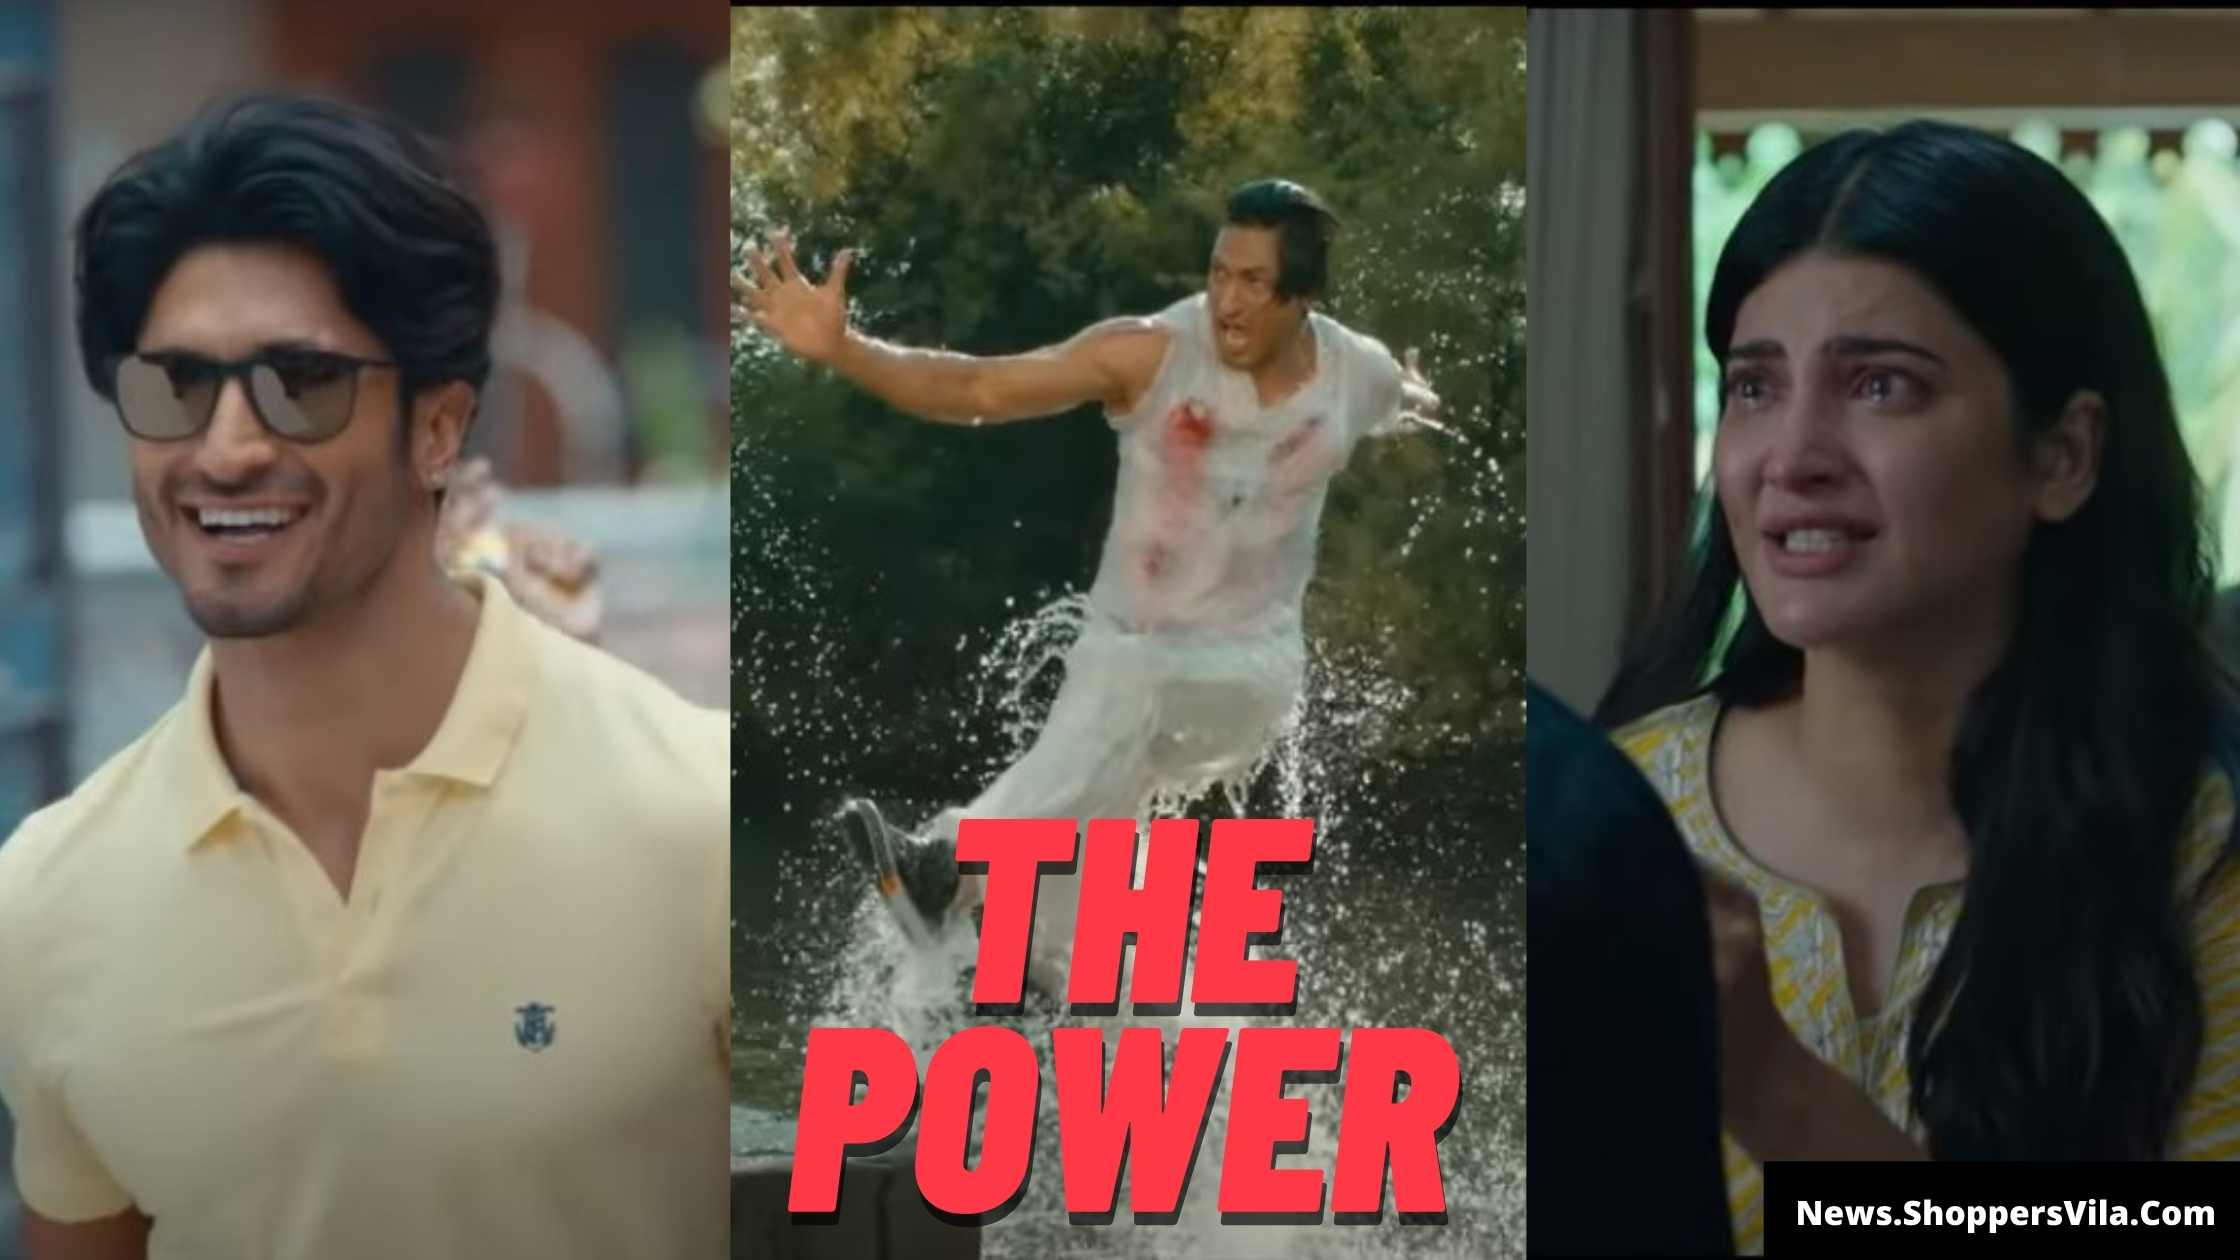 The Power (2021) Full Movie Download in Hindi Filmyzilla Filmywap Pagalworld Free in HD (480p, 720p & 1080p)